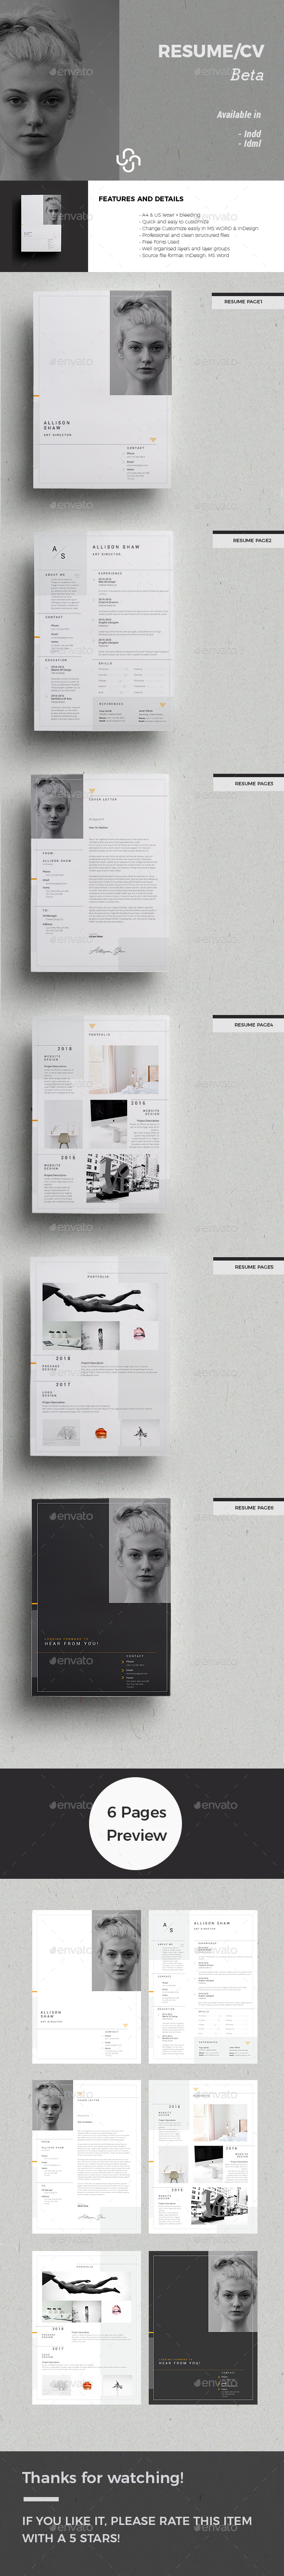 Beta Resume Template - Resumes Stationery